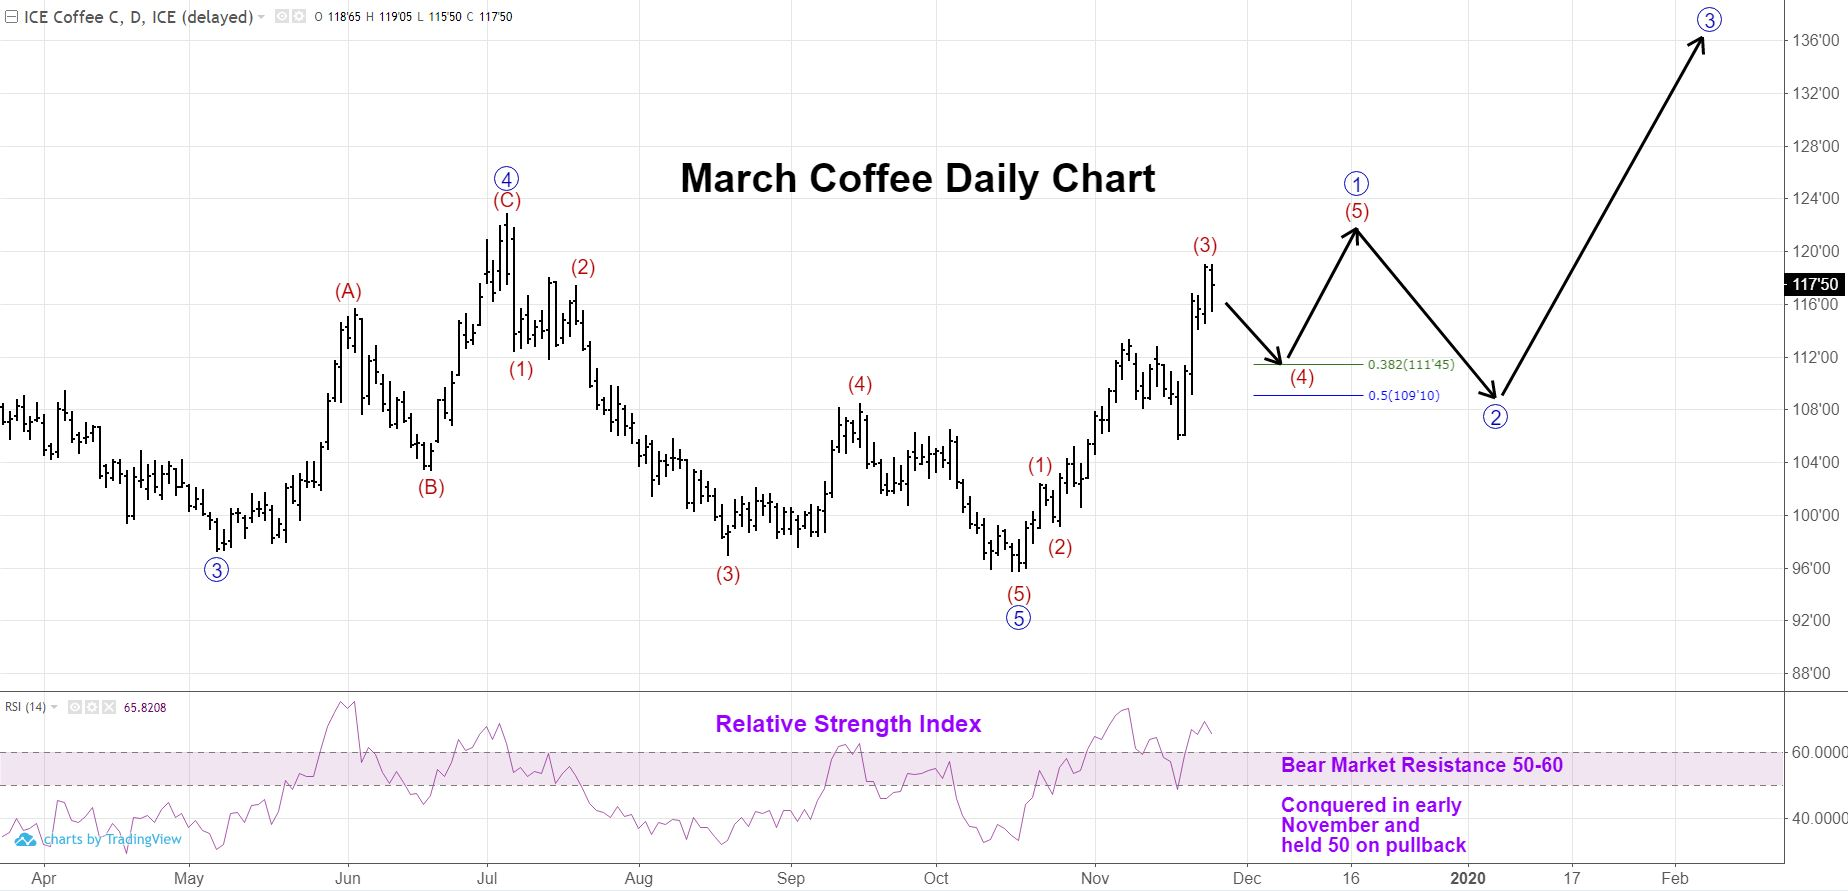 March Coffee Futures Price Chart With RSI